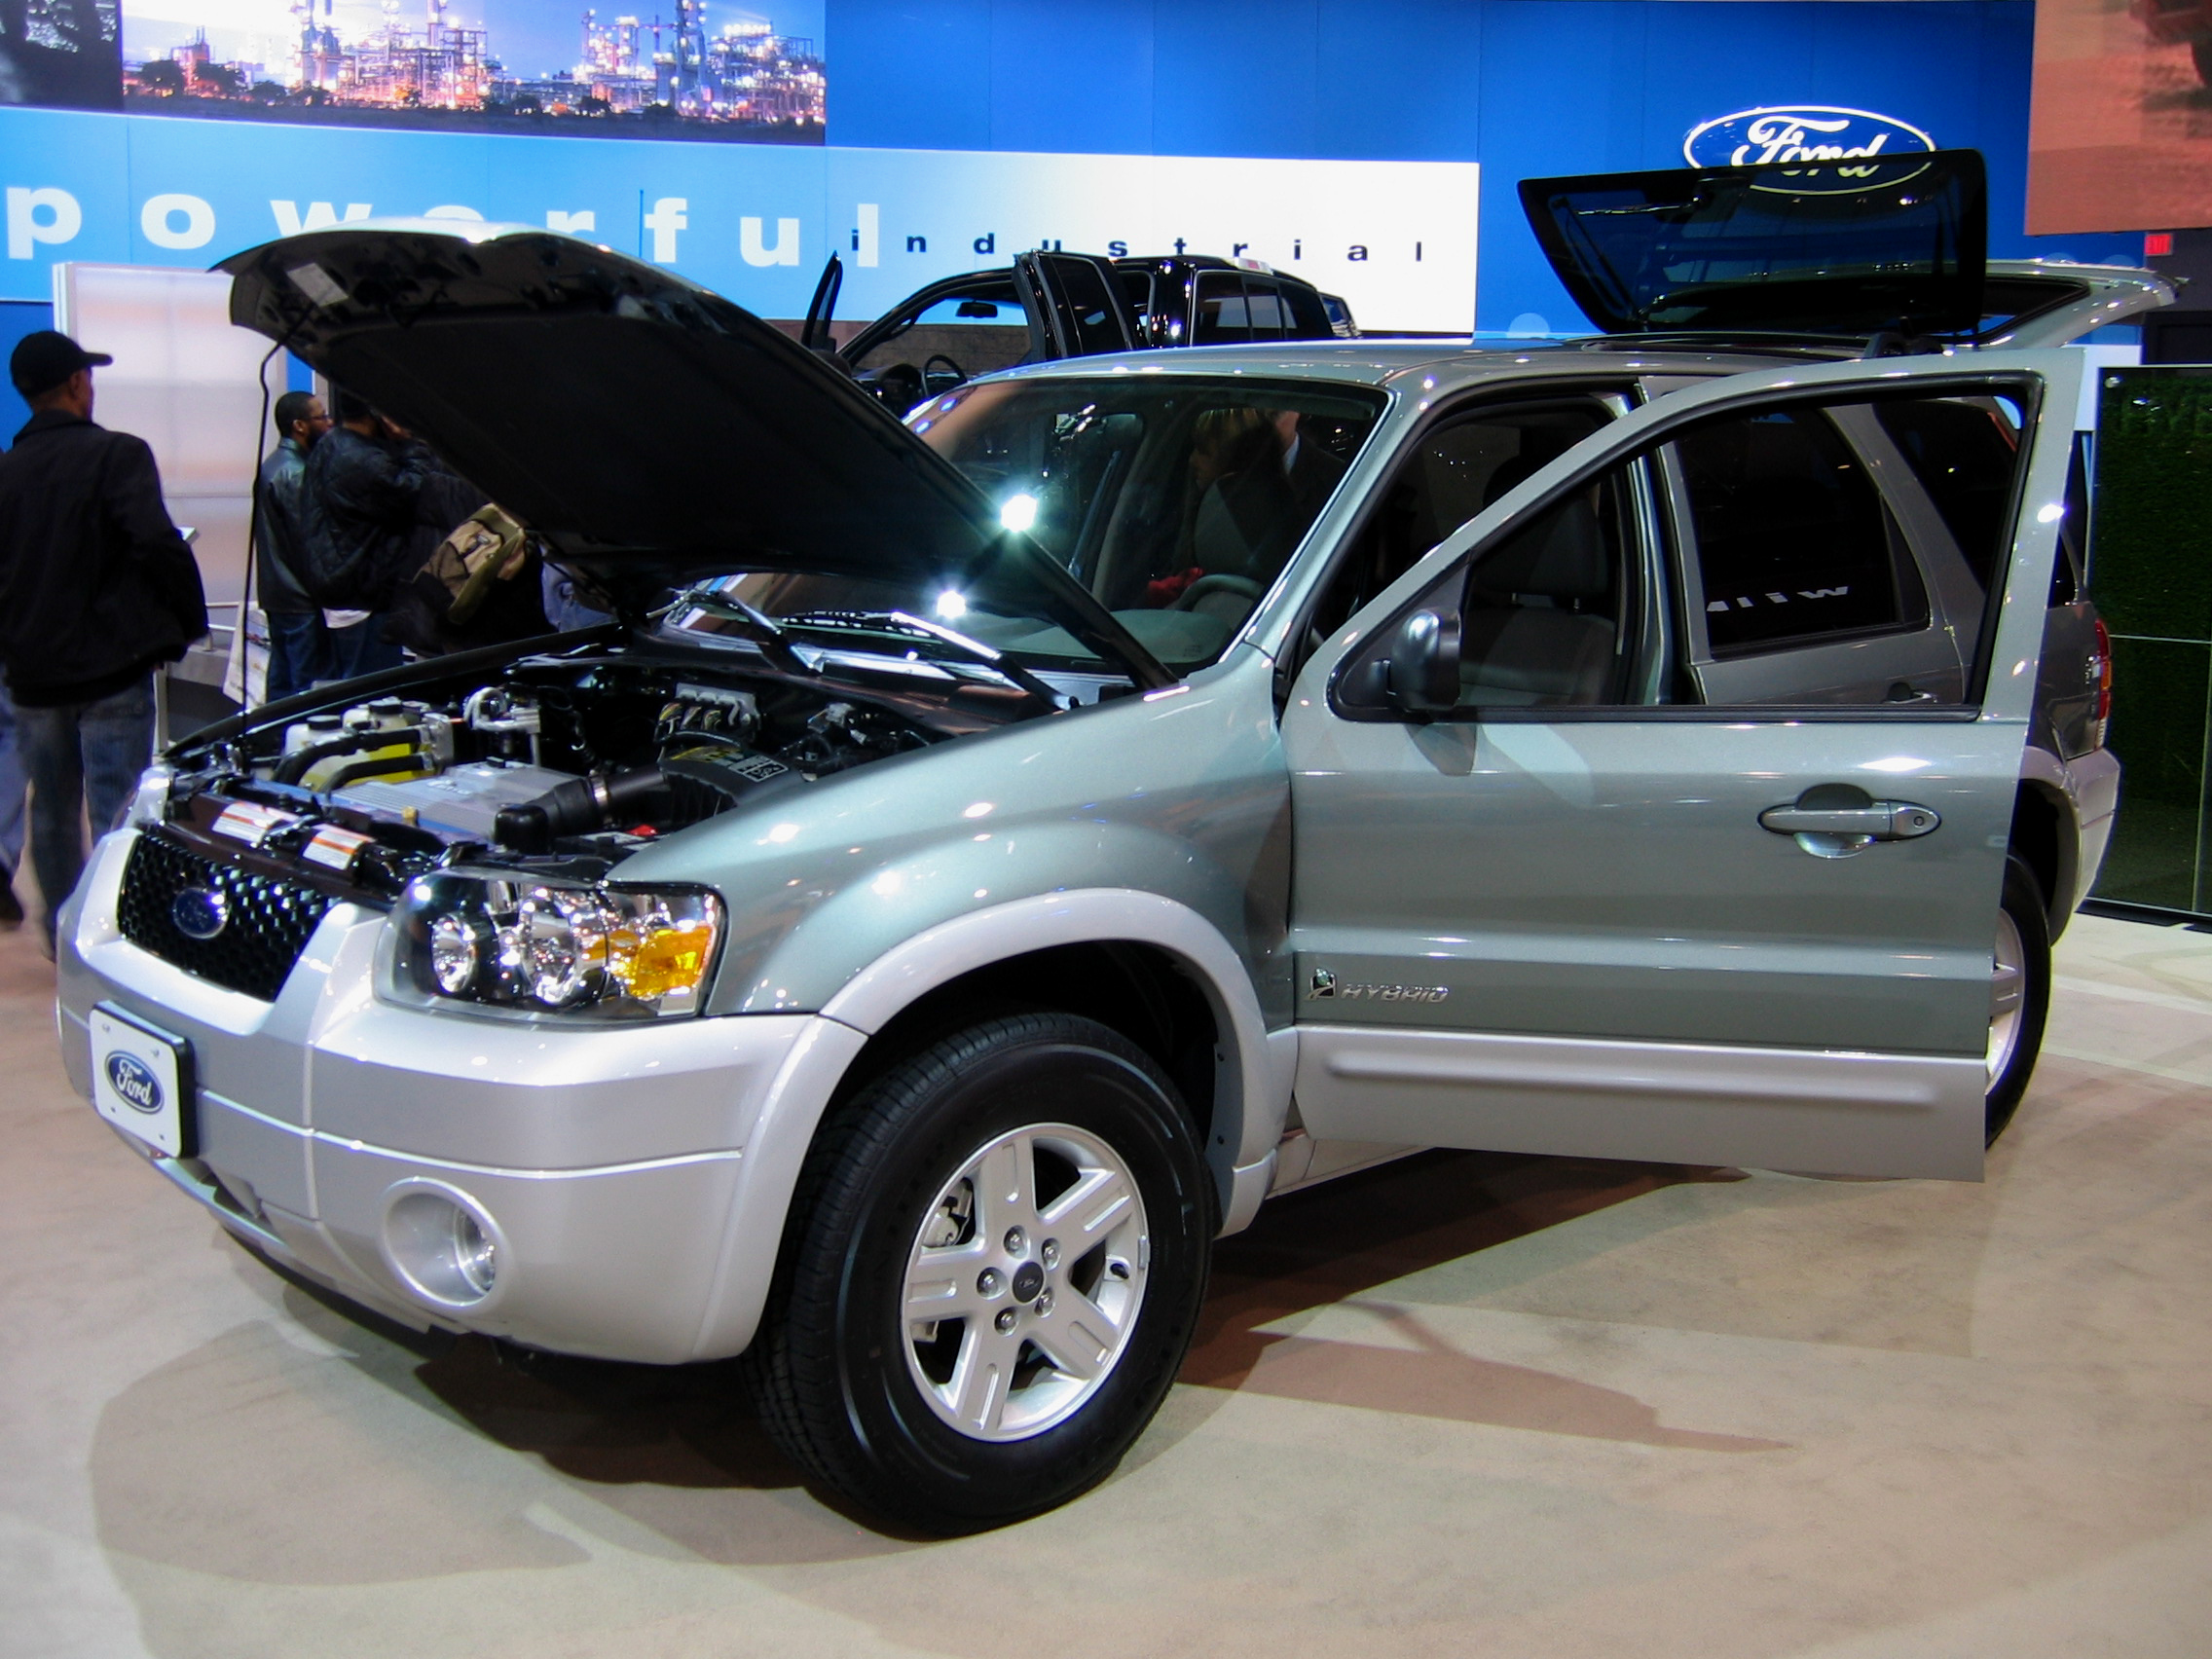 Fileford escape hybrid jpg